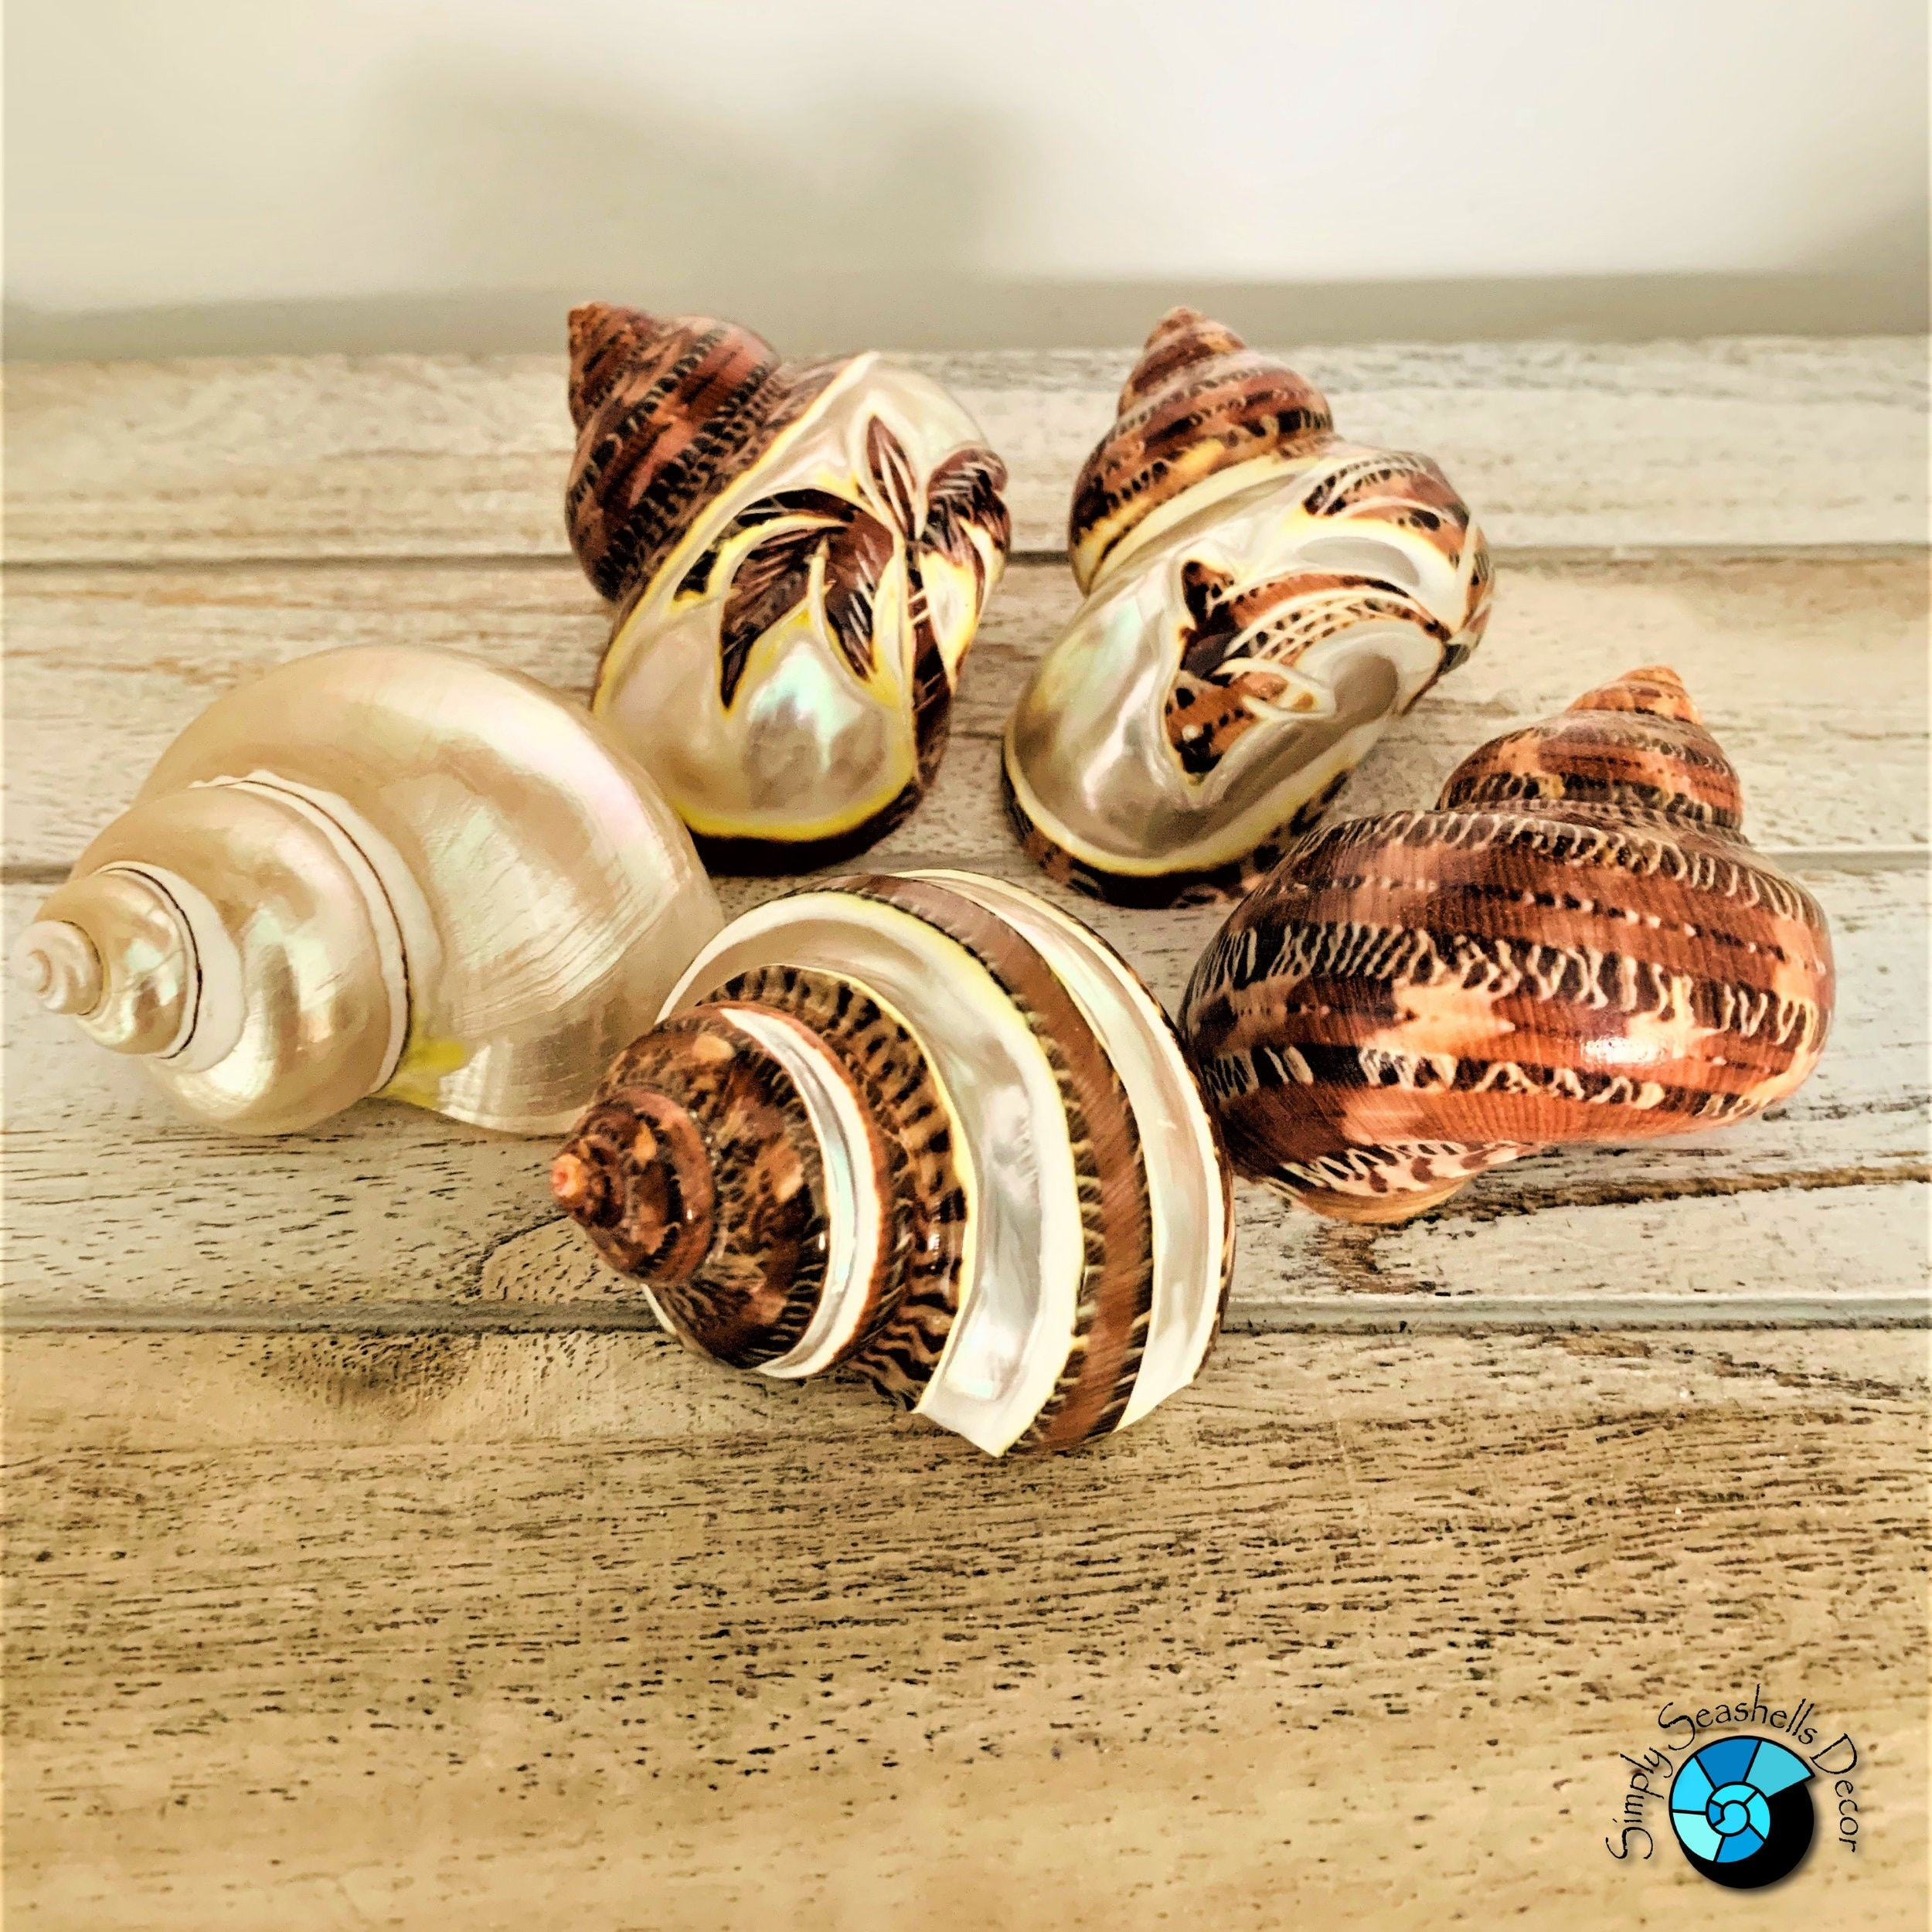 Turbo Shells Decor (5 pcs) Beach Home Decor - Hermit Crab Shell - Natural  Seashells